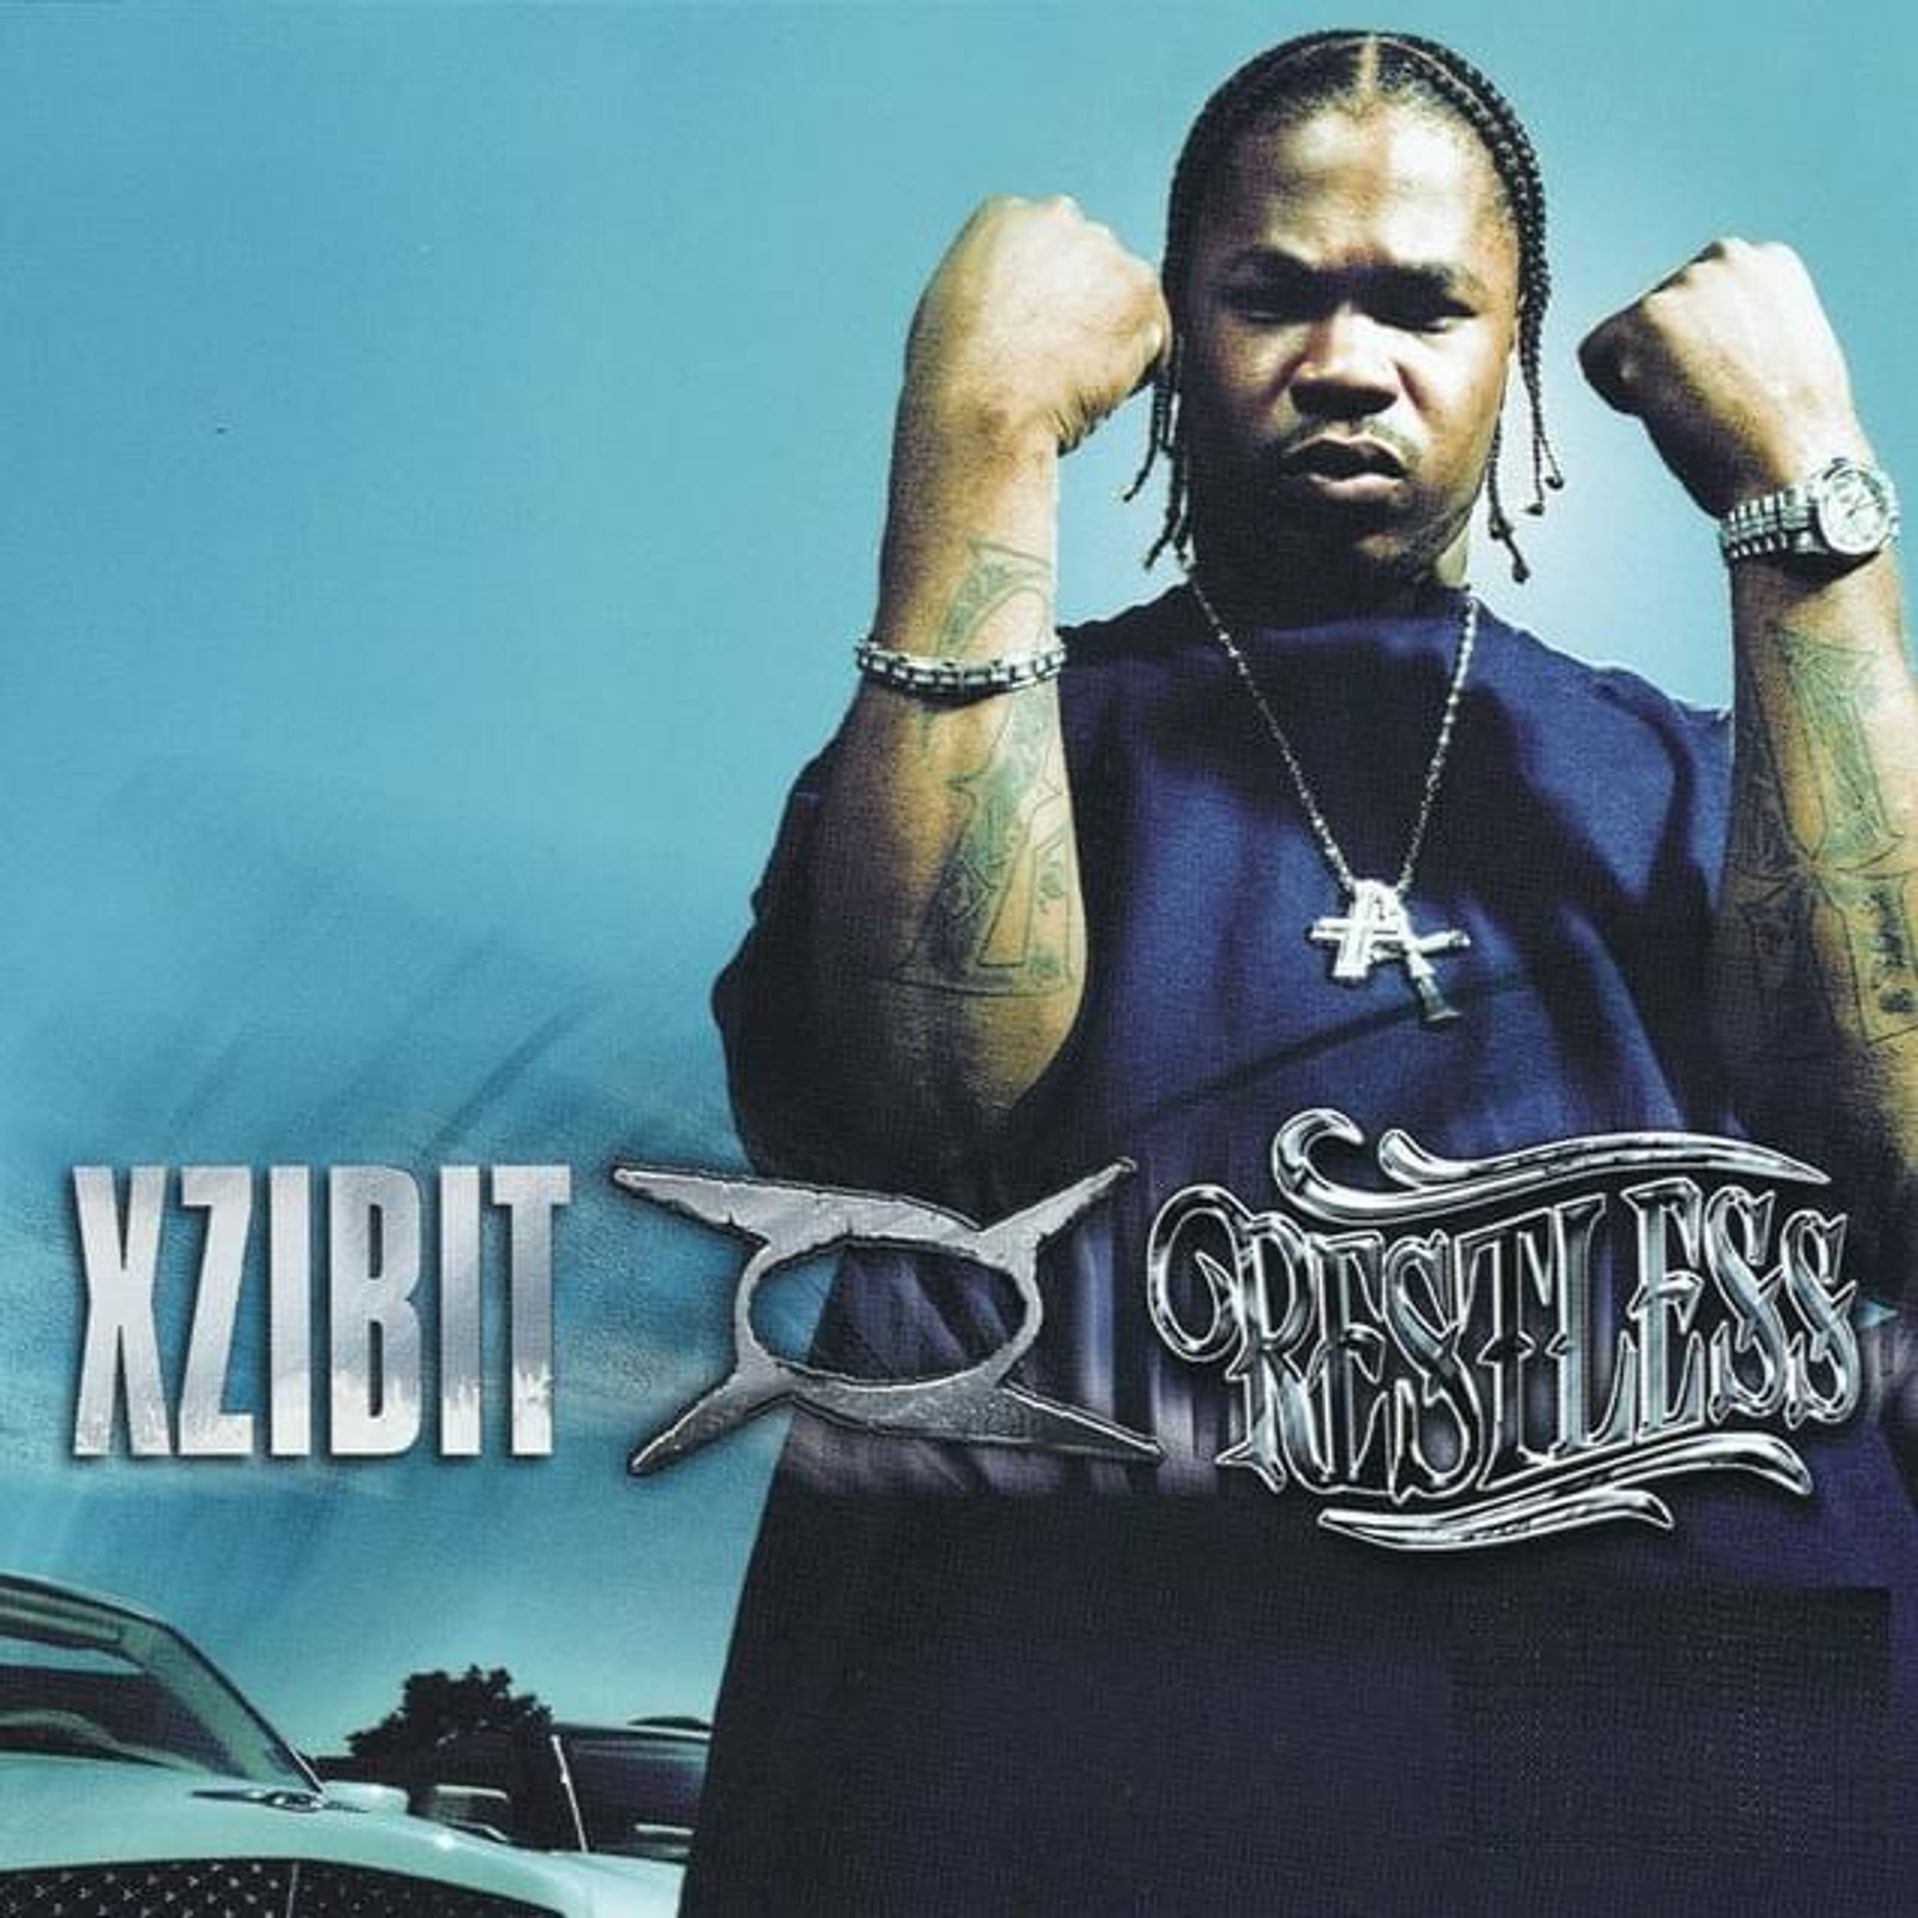 Album Title: Restless by: Xzibit